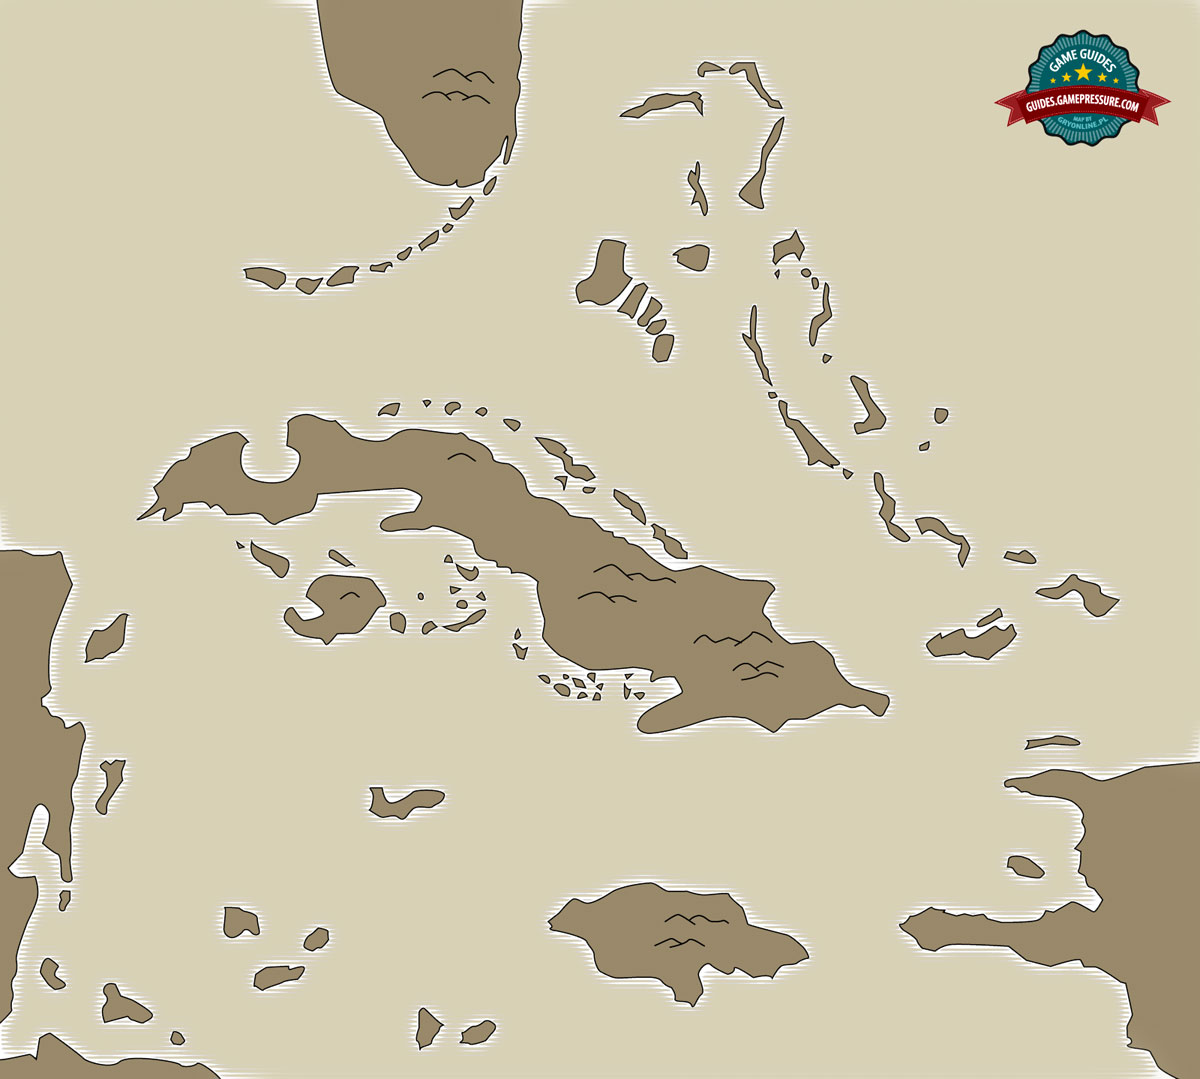 Map of Caribbean - Assassin's Creed IV: Black Flag